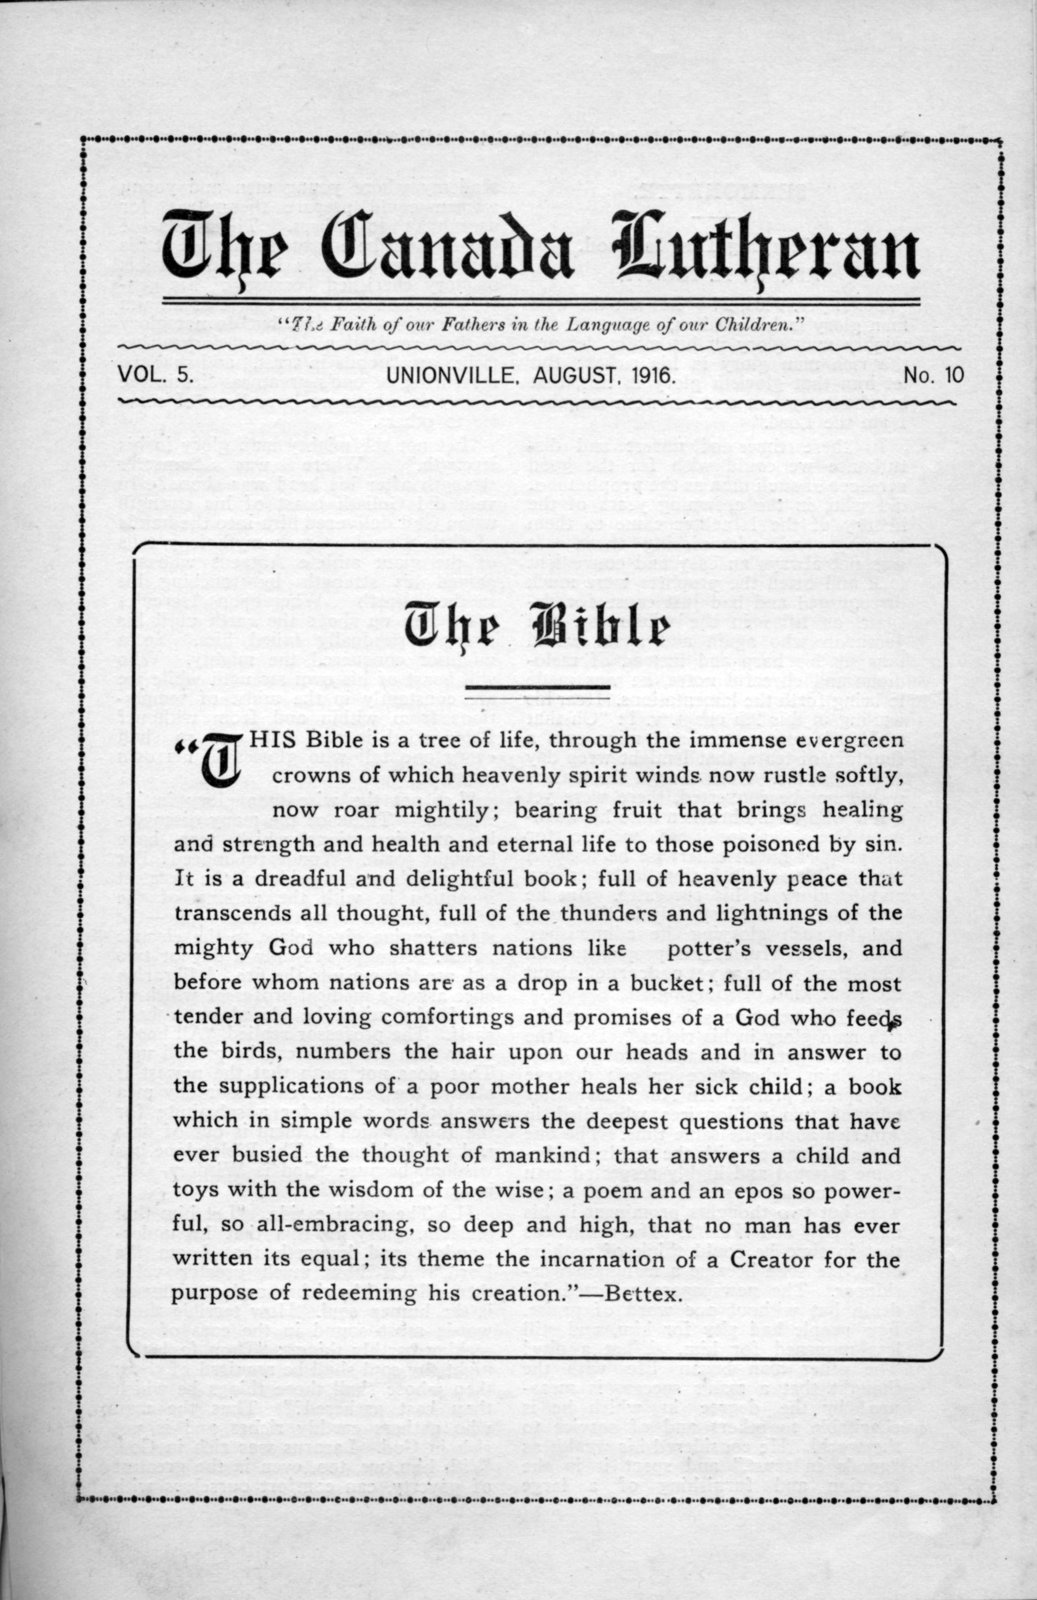 The Canada Lutheran, vol. 4, no. 10, August 1916